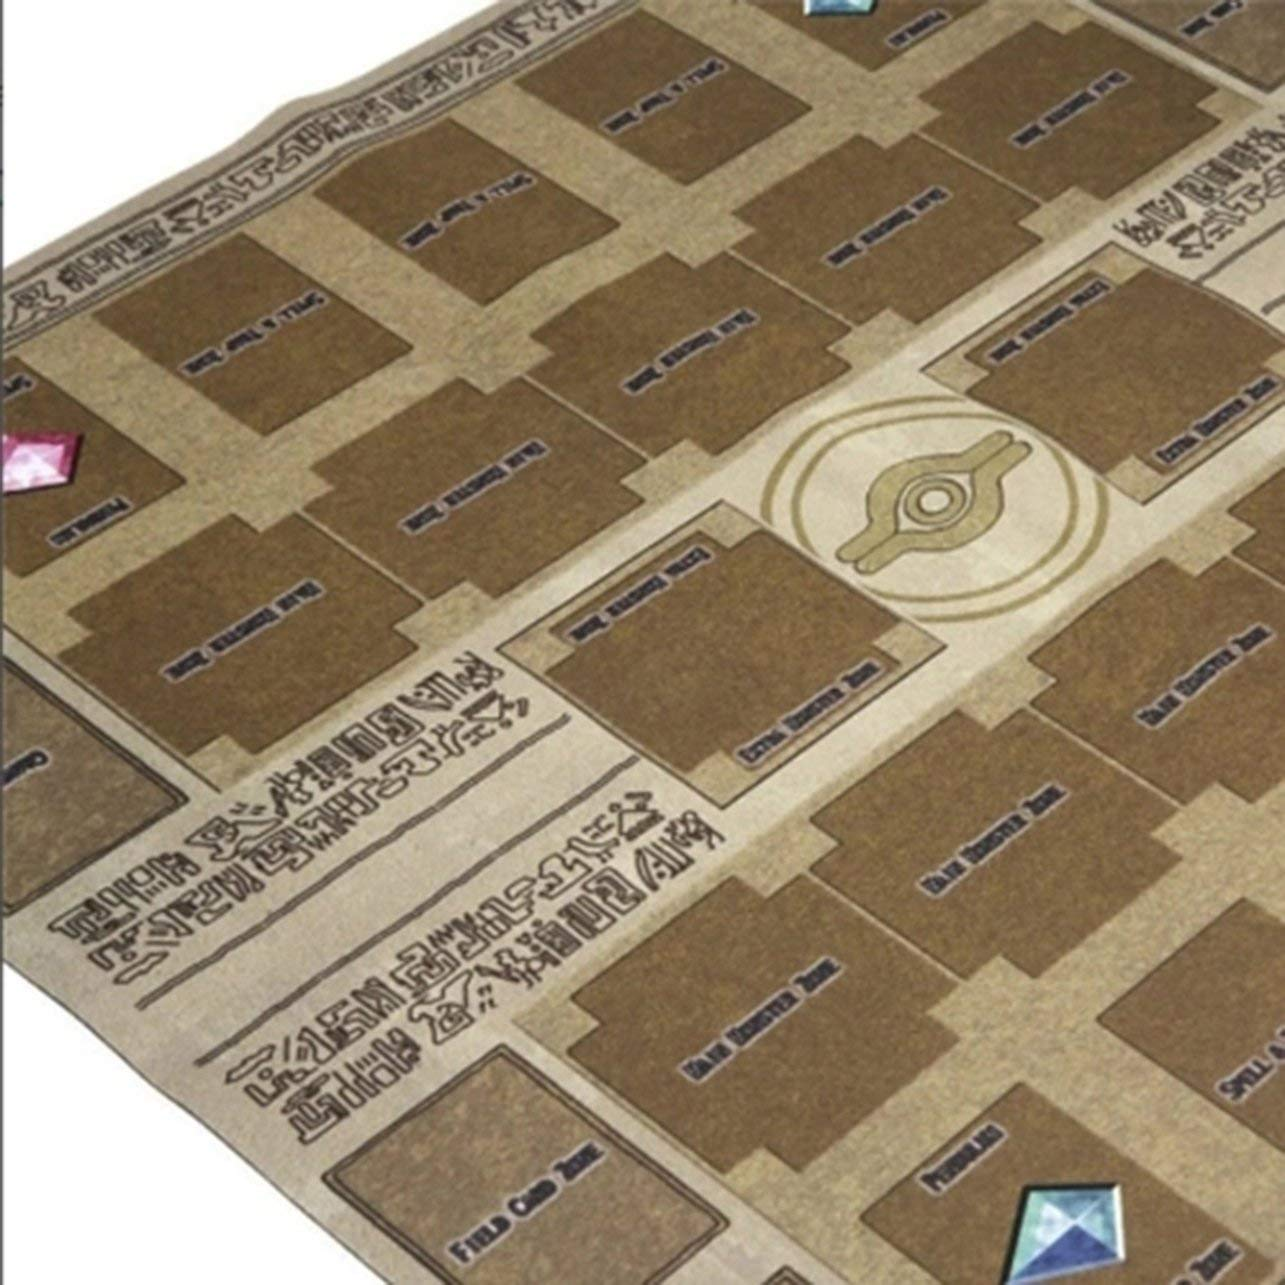 60cm Rubber Play Mat Dennis World Type Competition Pad for Yu-gi-oh Card Romirofs Card Play 60